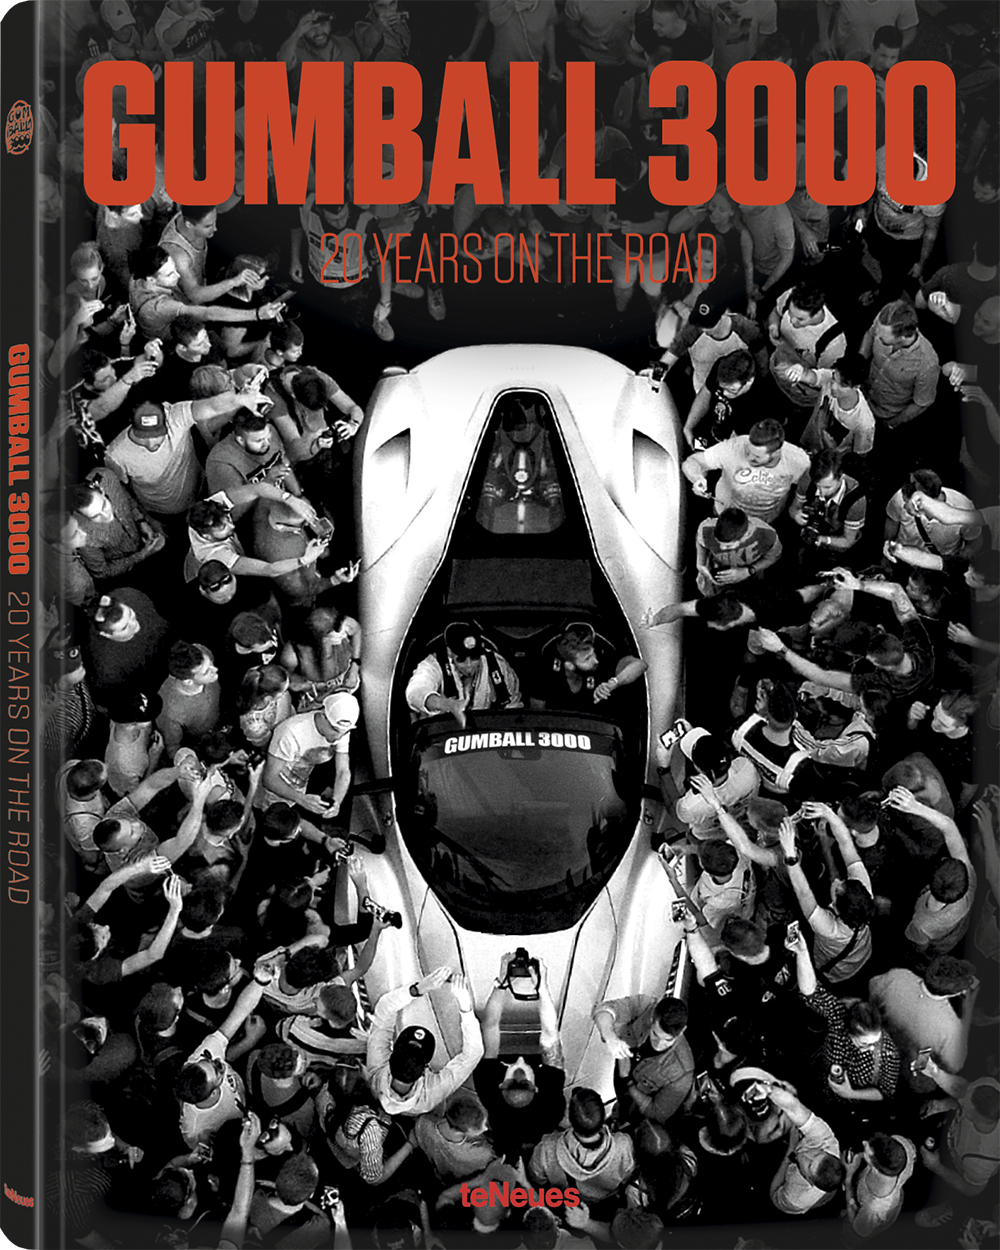 © Gumball 3000 - 20 Years on the Road, published by teNeues, € 80 www.teneues.com , Photo © Sabin Stanescu